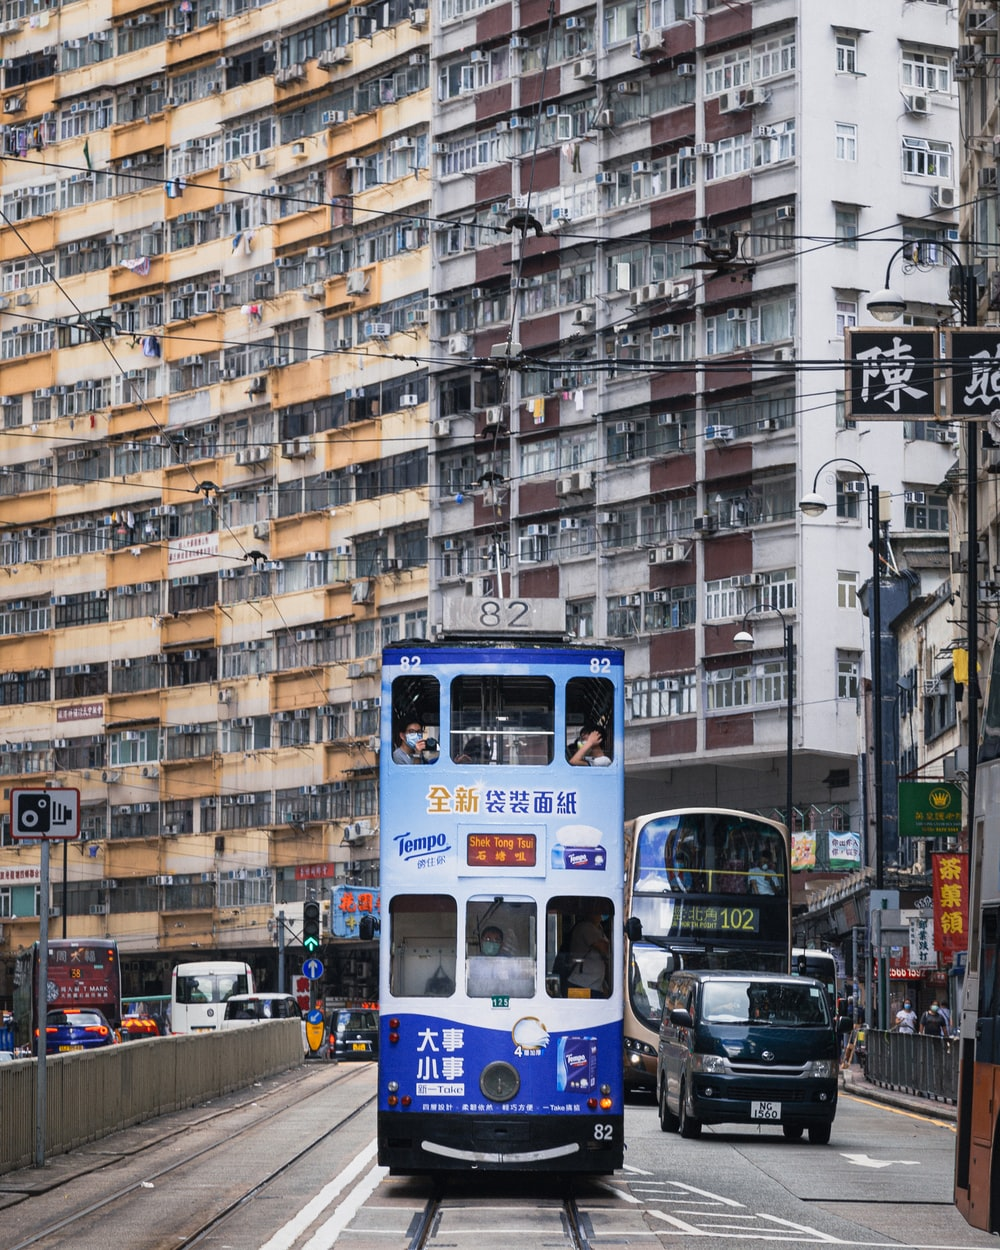 blue and white bus on road near high rise buildings during daytime